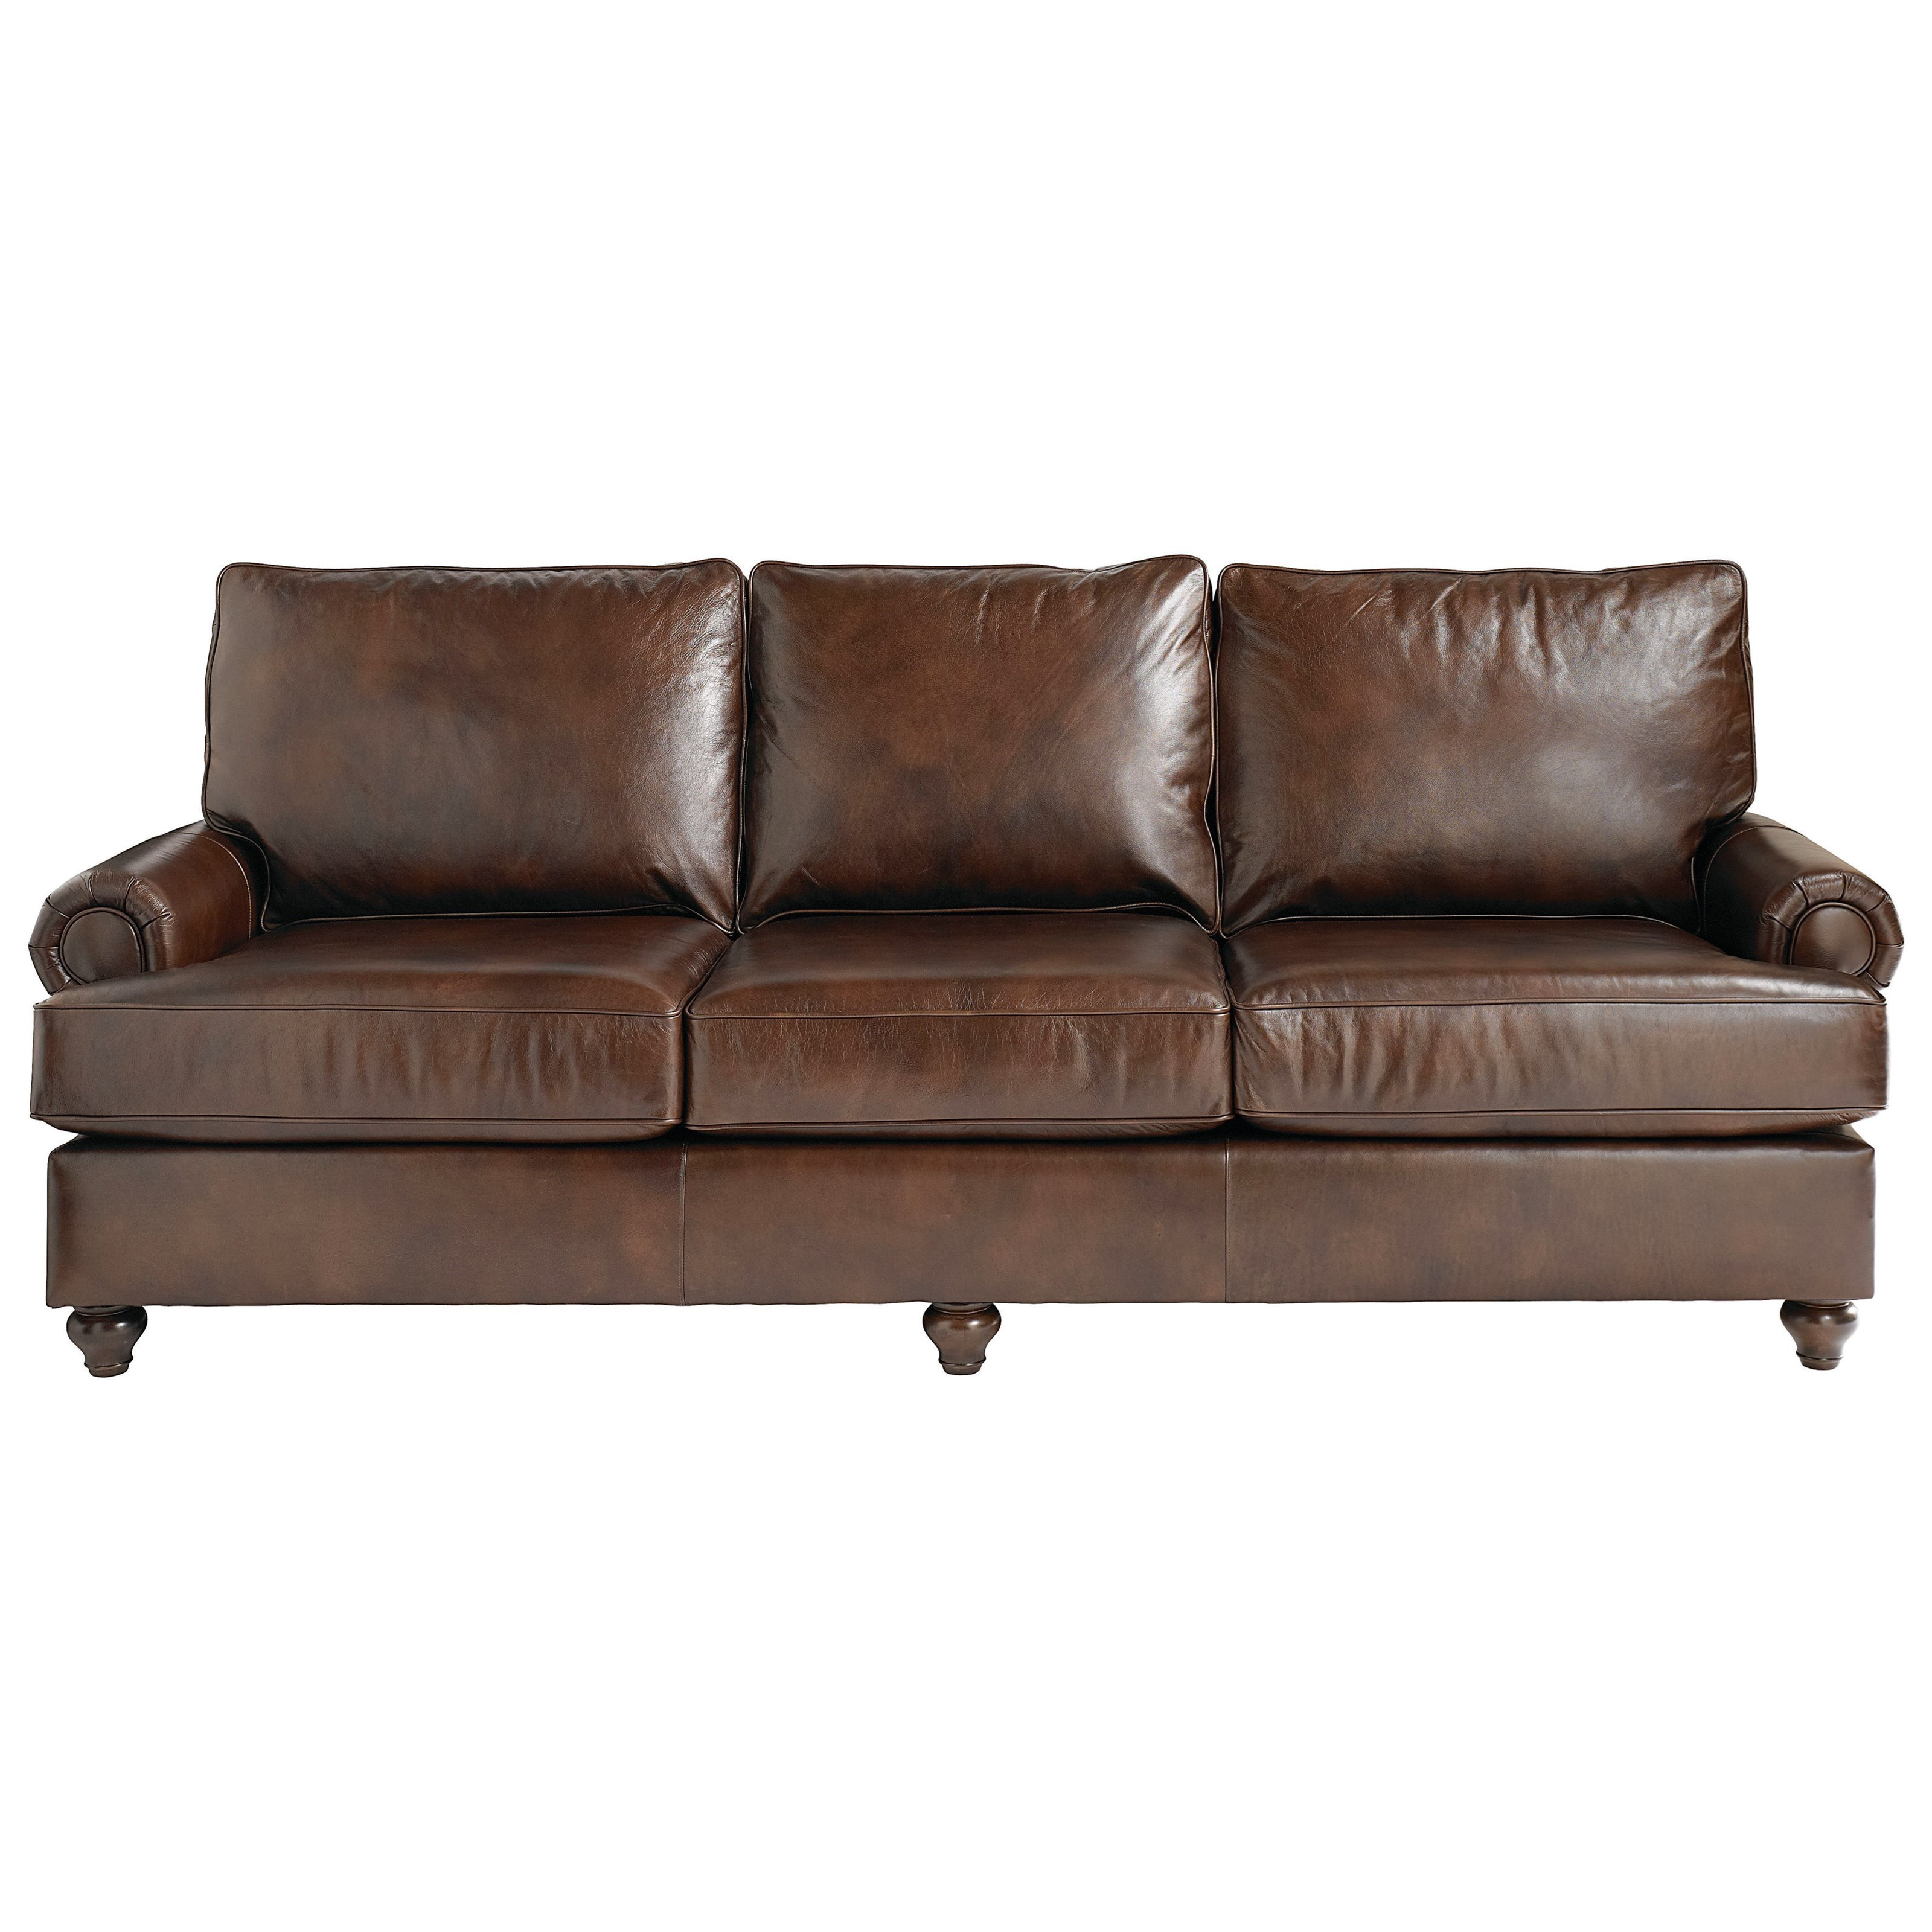 Charming Bassett Montague 3103 82L Casual Sofa With Rolled Arms   Hudsonu0027s Furniture    Sofas